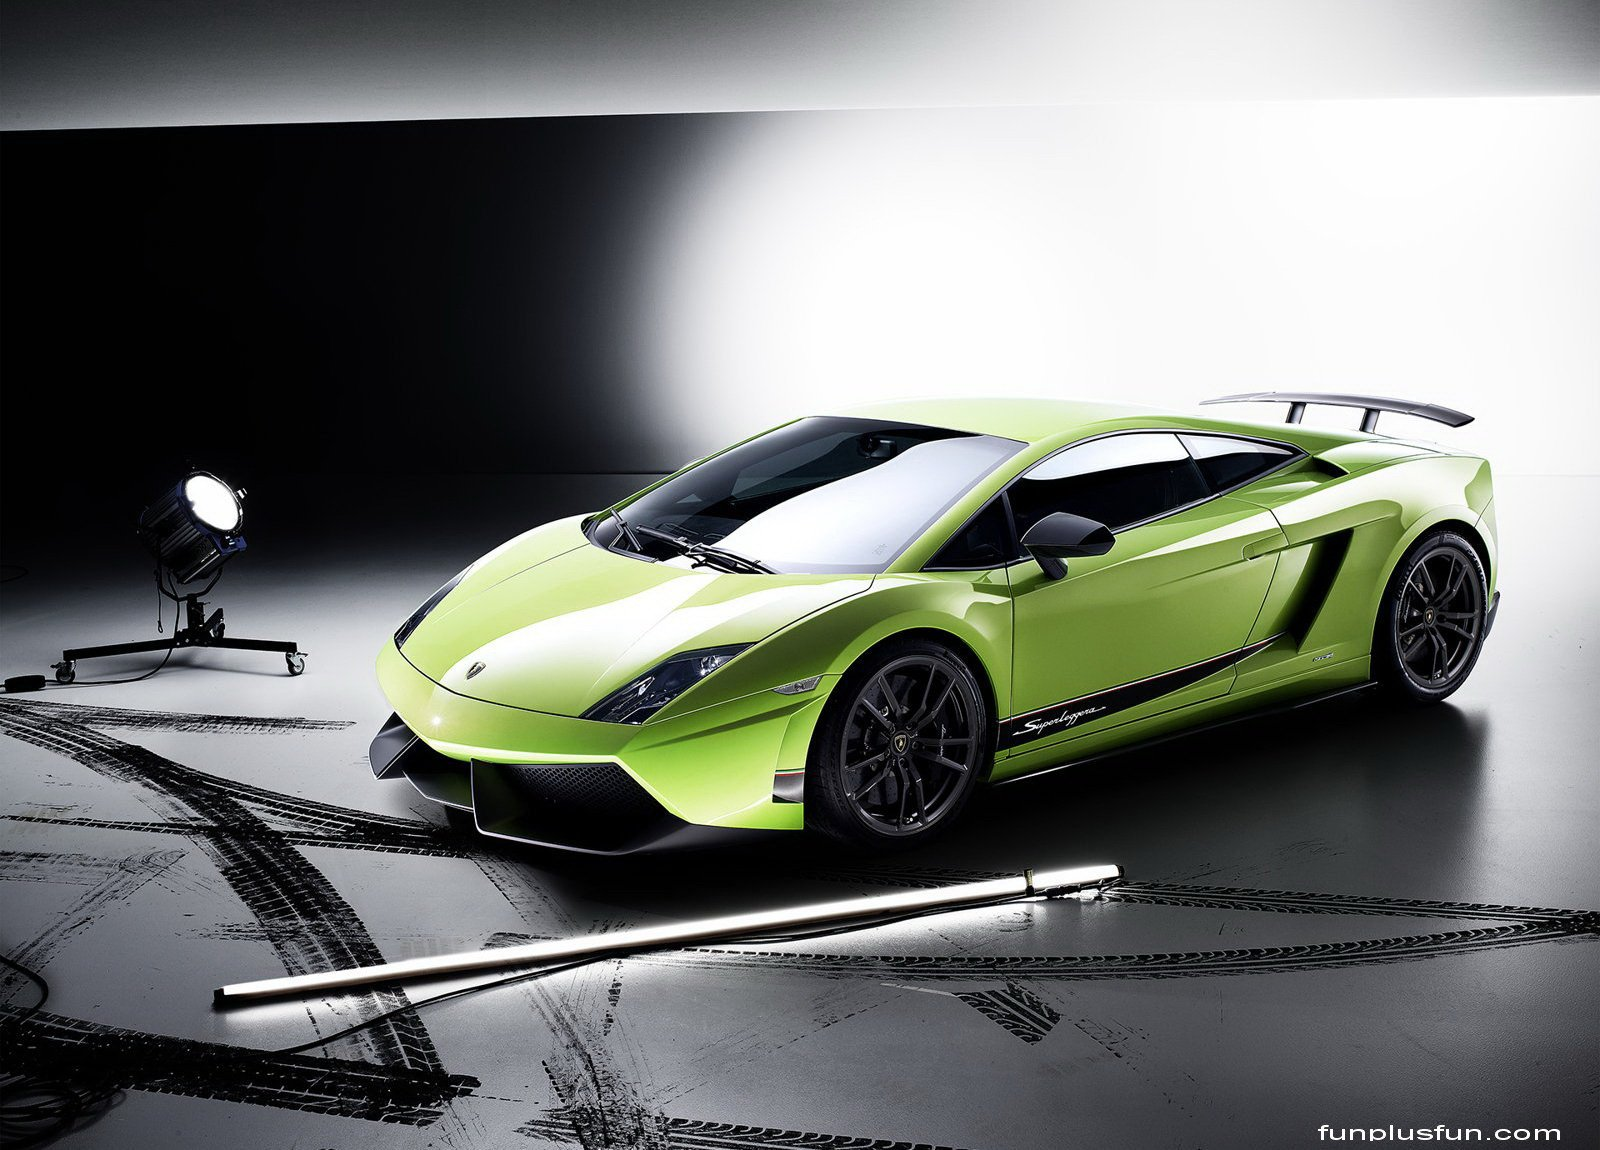 Cool Wallpapers HD Cars Cool Wallpapers HD 1600x1150